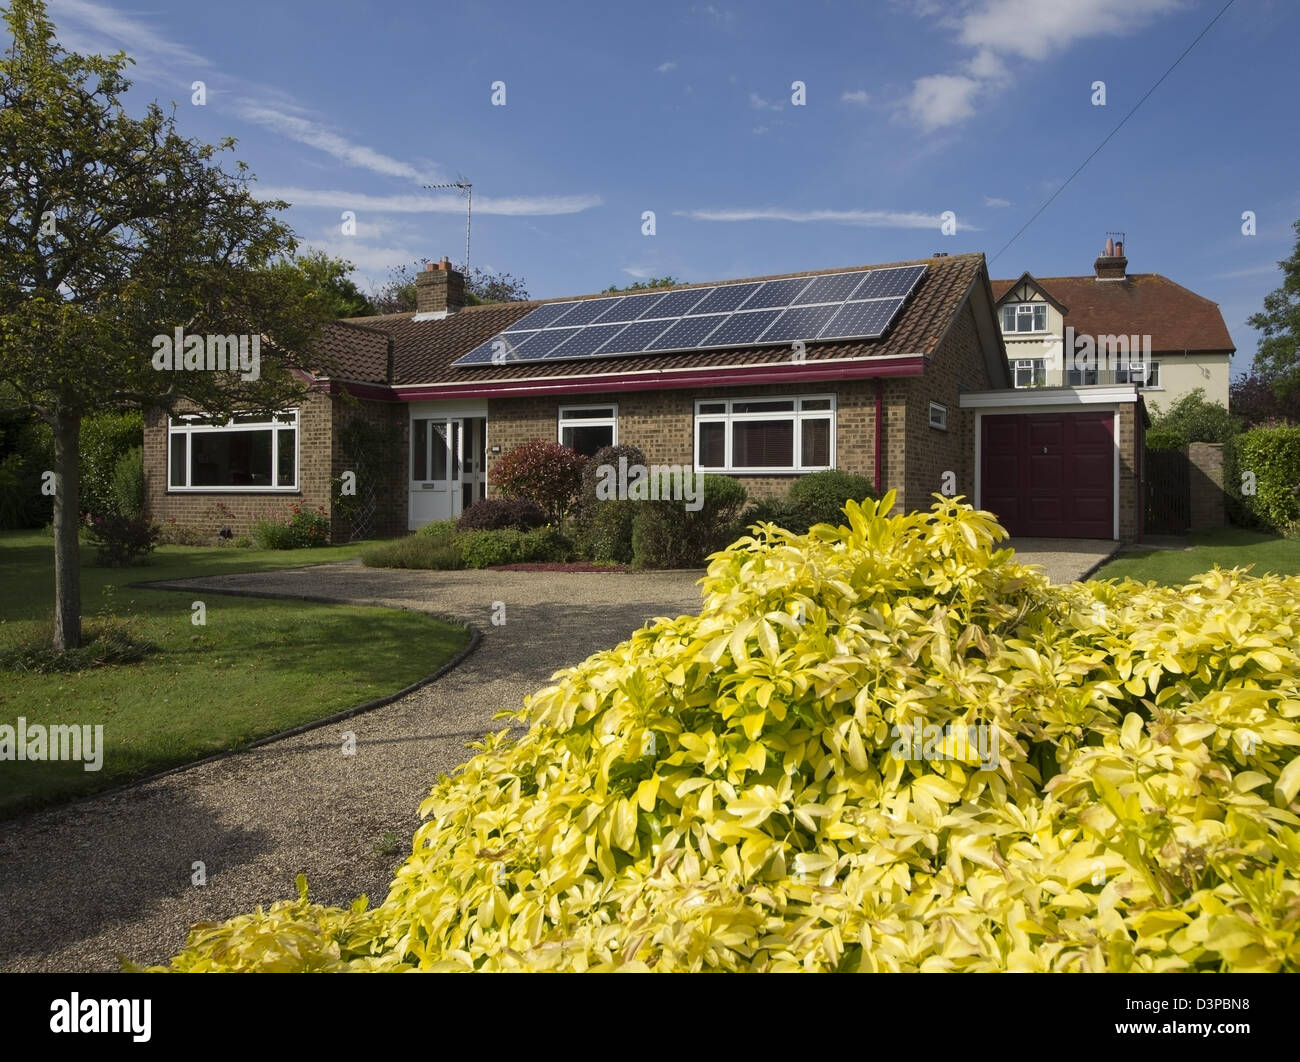 array of 16 solar panels on bungalow - Stock Image